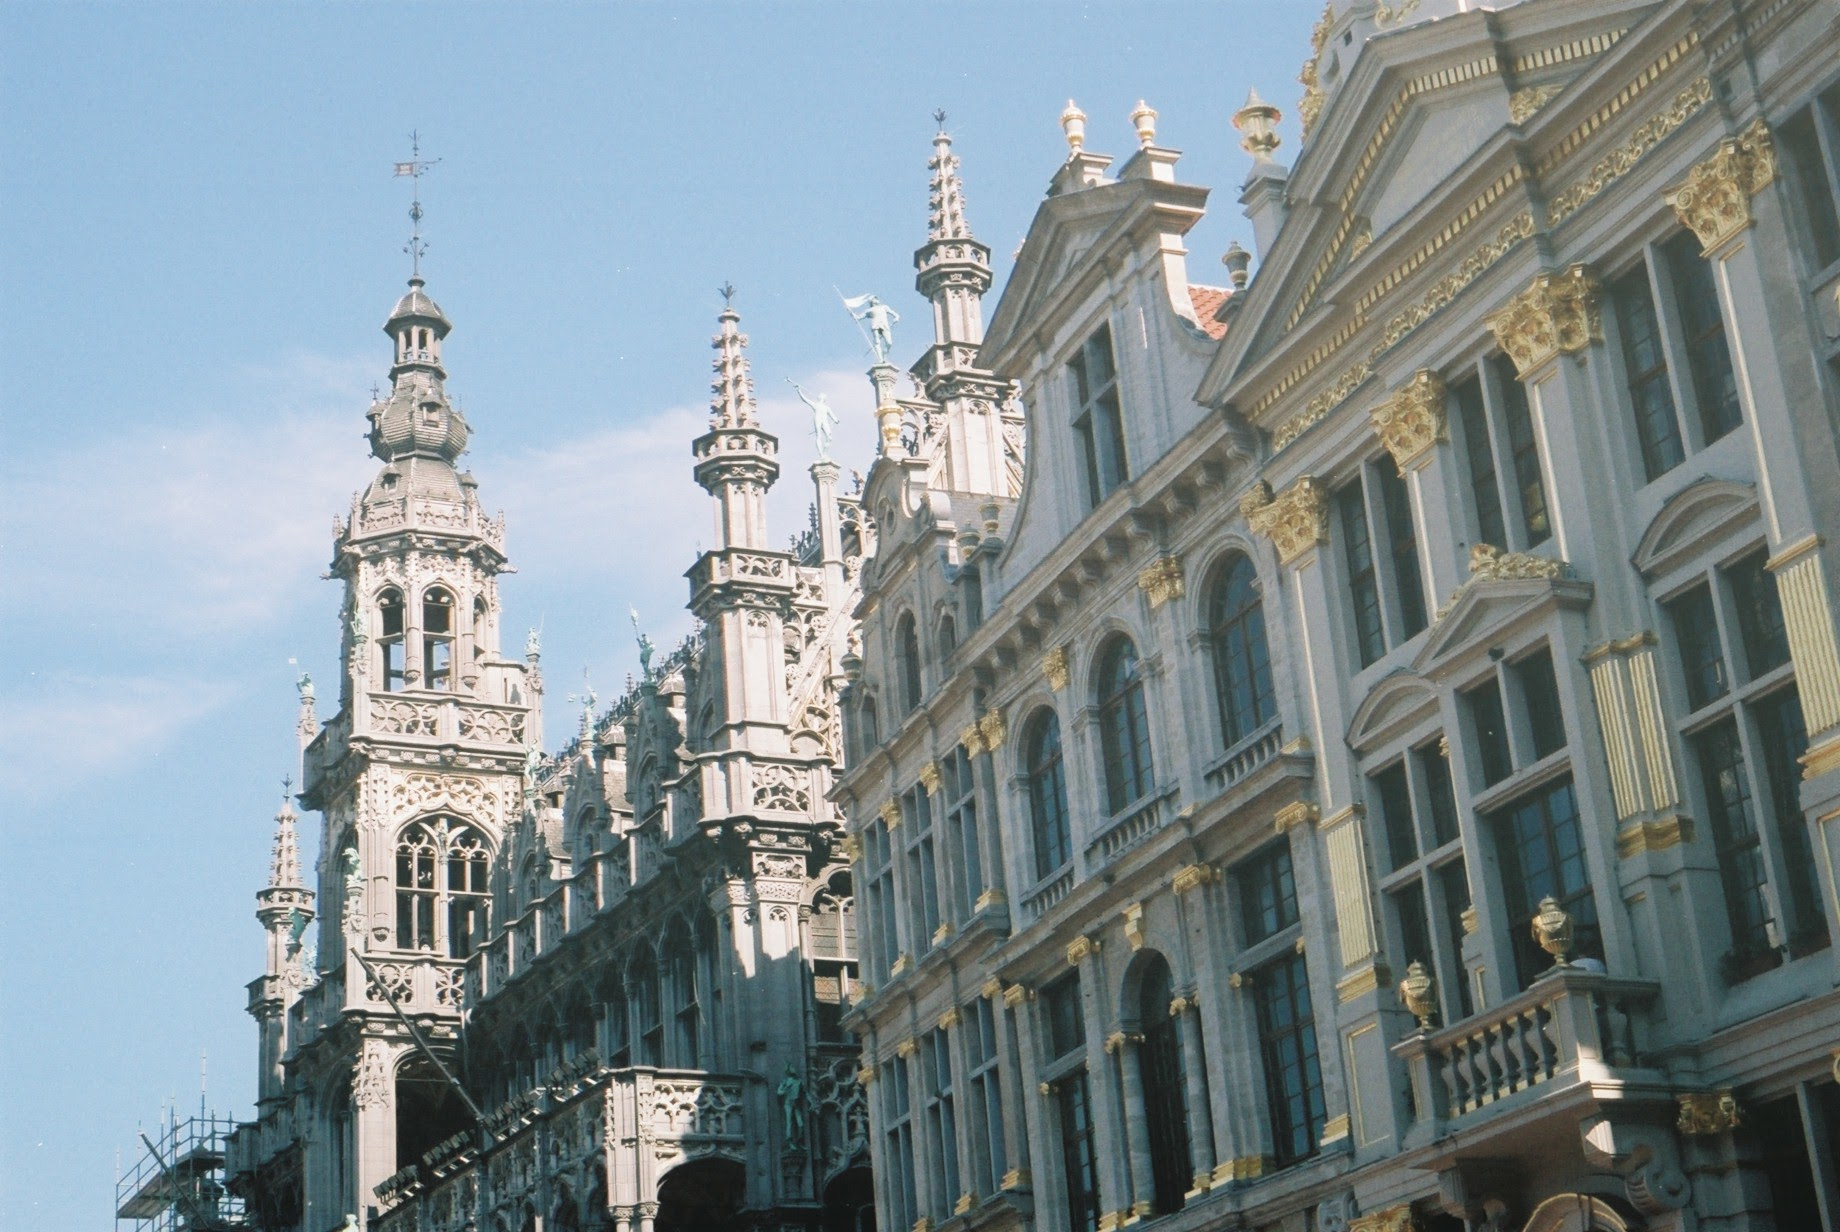 Brussels, visit brussels, visit belgium, architecture, architecture photography, canon, canon ae-1, explore, travel blog, bikepacking blog, cycling, cycling blog, building, bicycle touring apocalypse, surly, surly bikes, raleigh, raleigh bikes